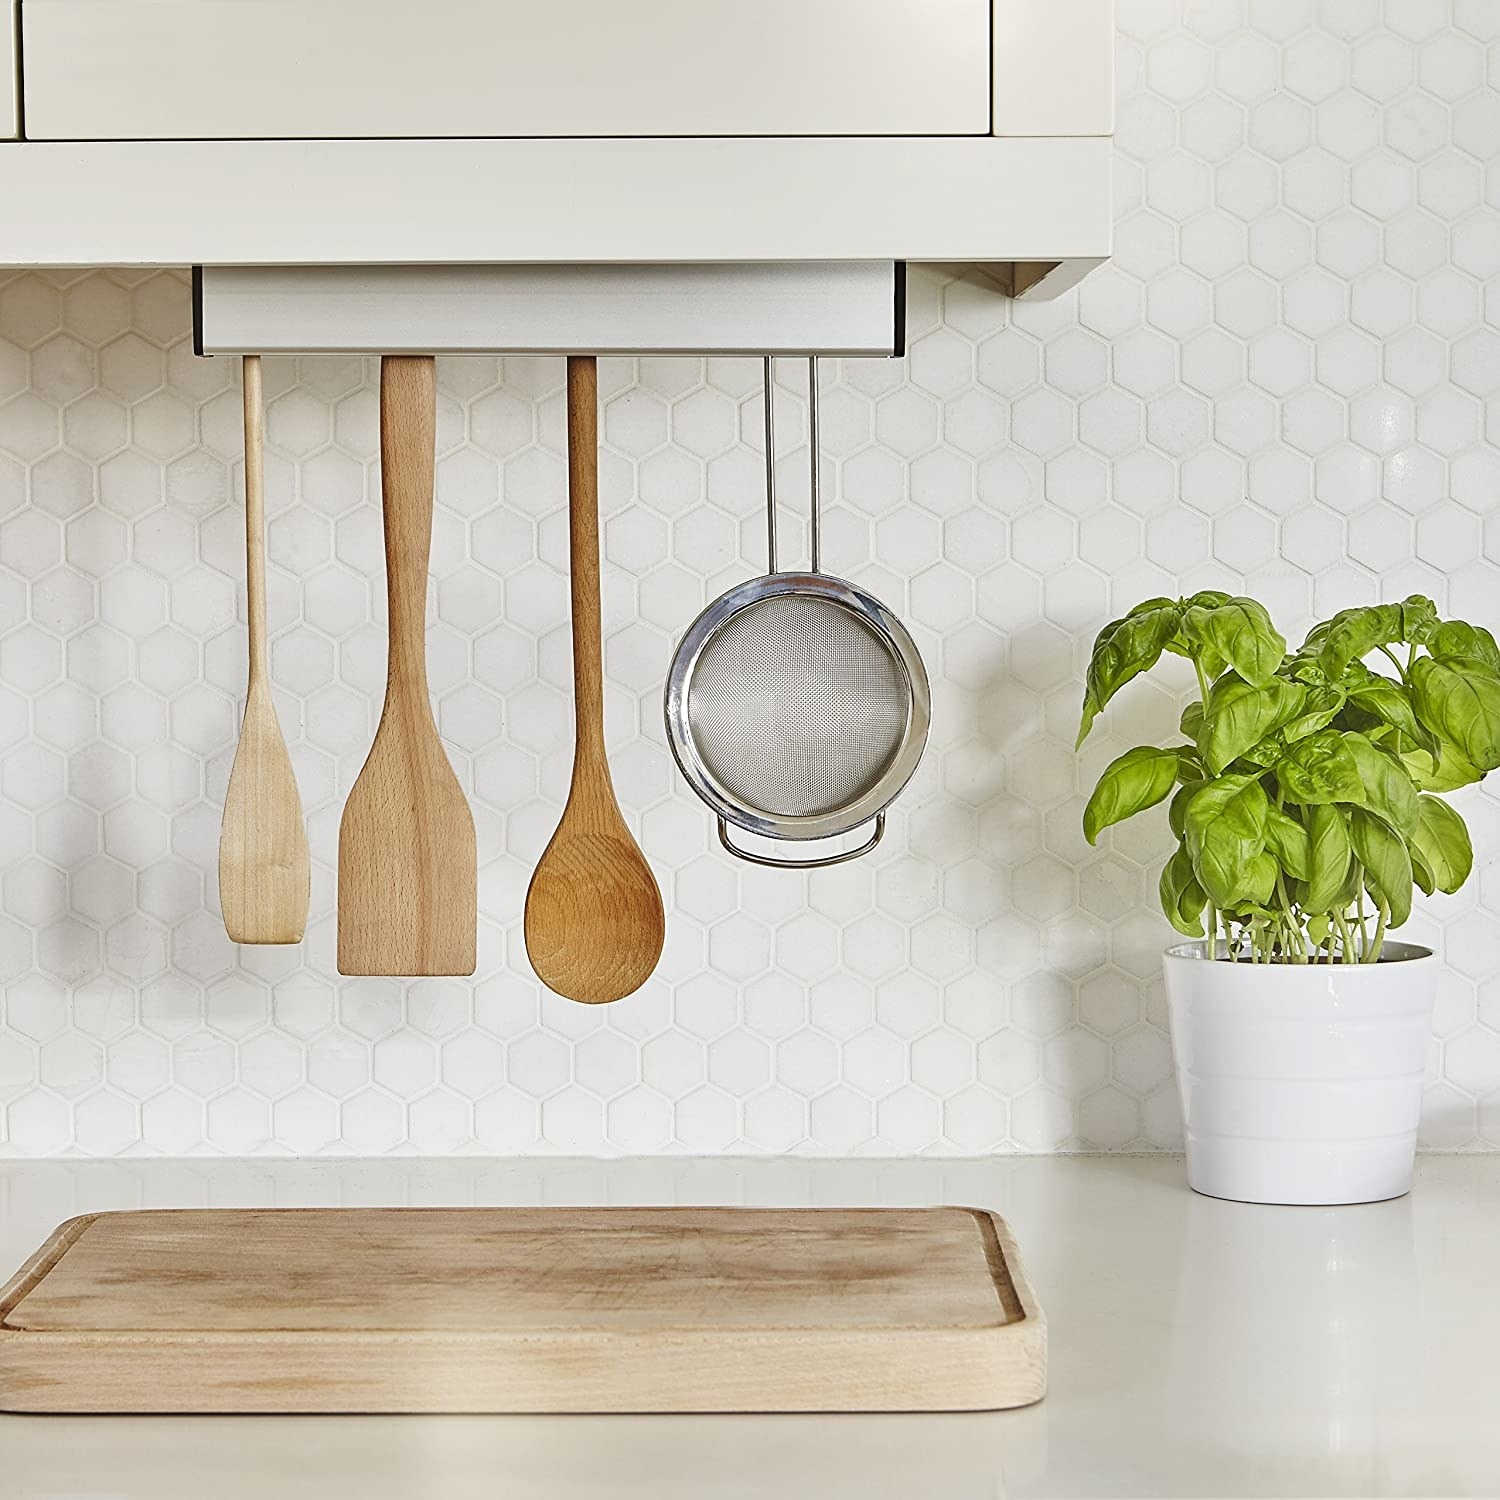 The utensil holder holding three wooden spoons and a strainer